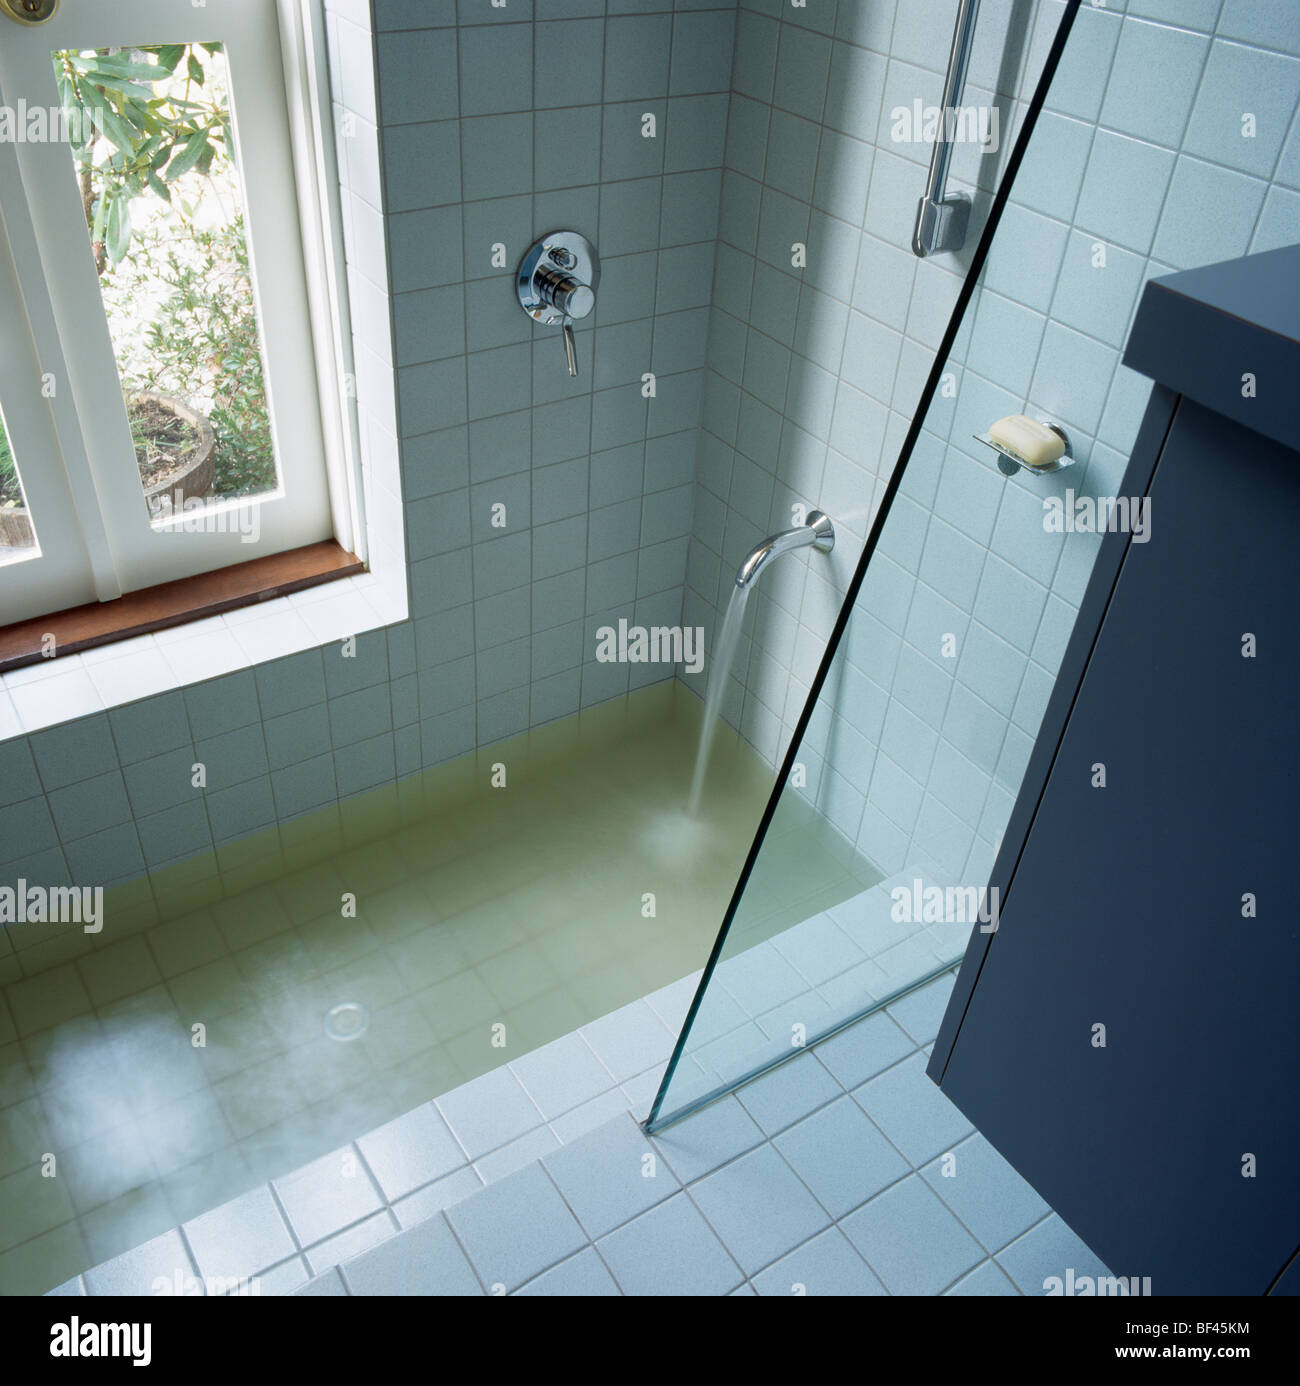 Water Pouring From Chrome Tap Into Sunken Bath With Glass Shower Stock Photo Royalty Free Image